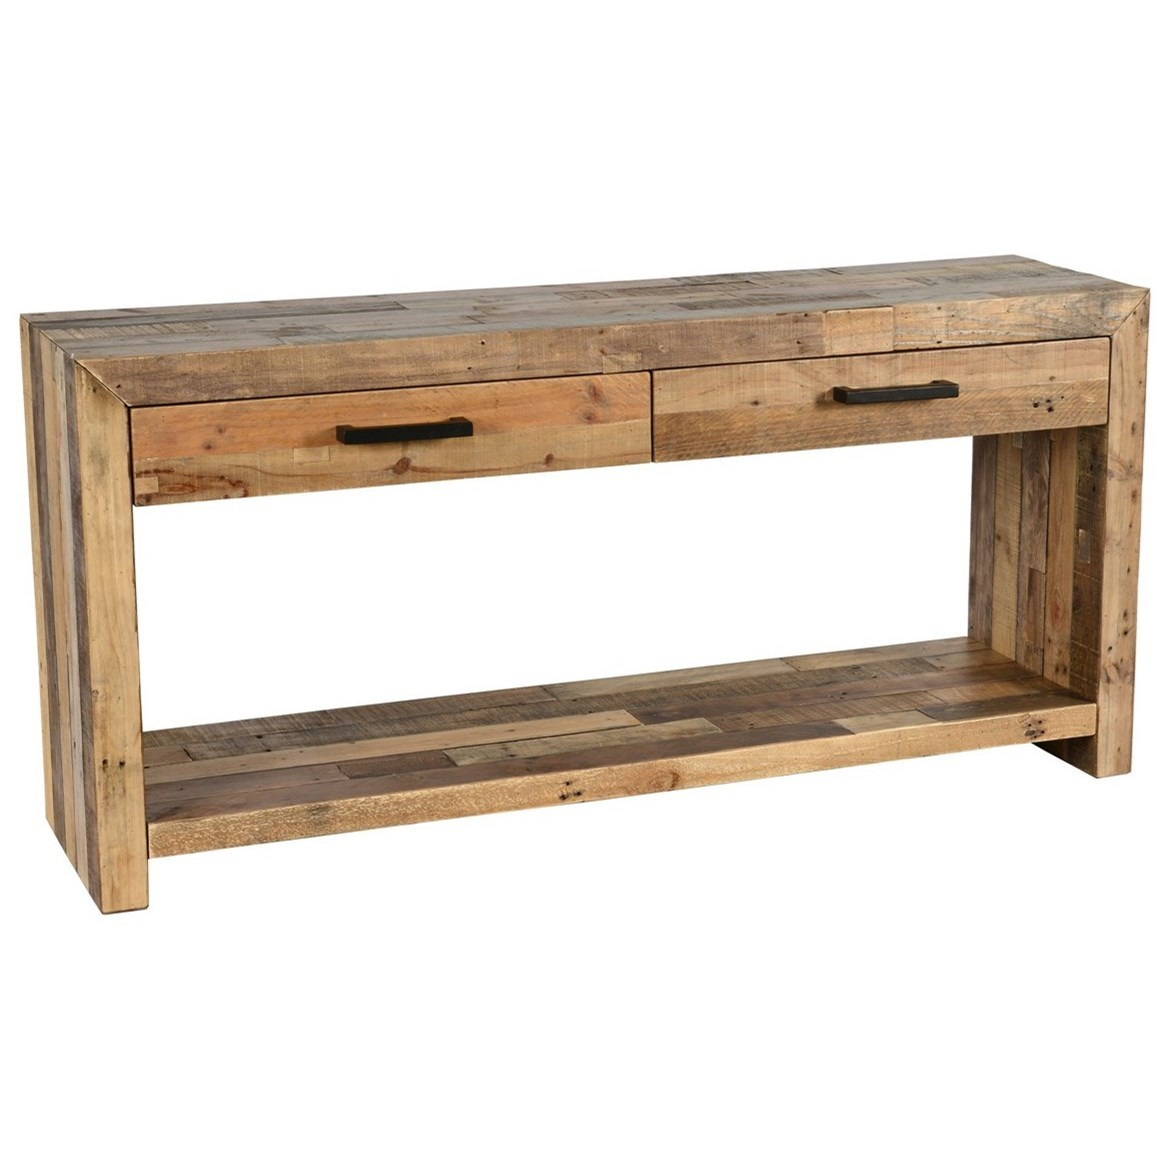 Classic Home Omni Transitional Solid Pine Wood Sofa Table With Shelf Two Drawers And Metal